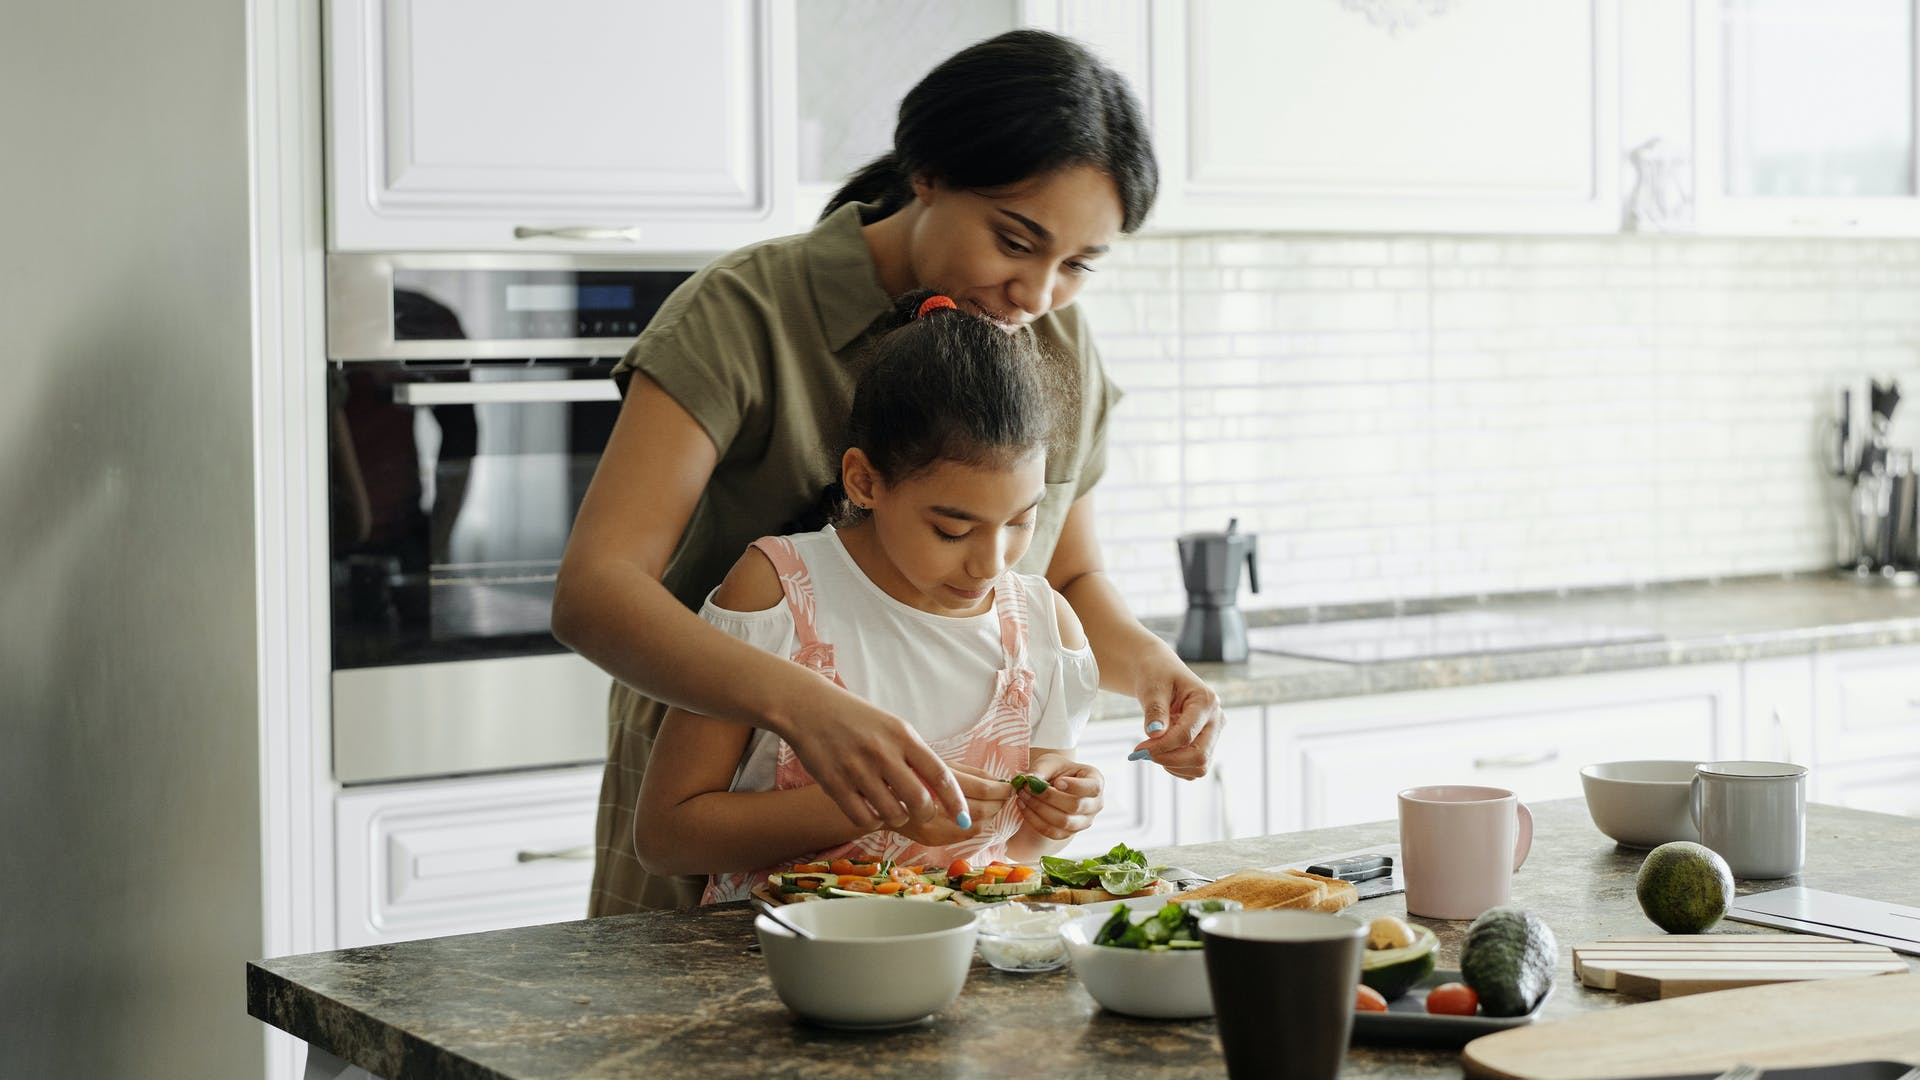 A woman and child preparing food together.